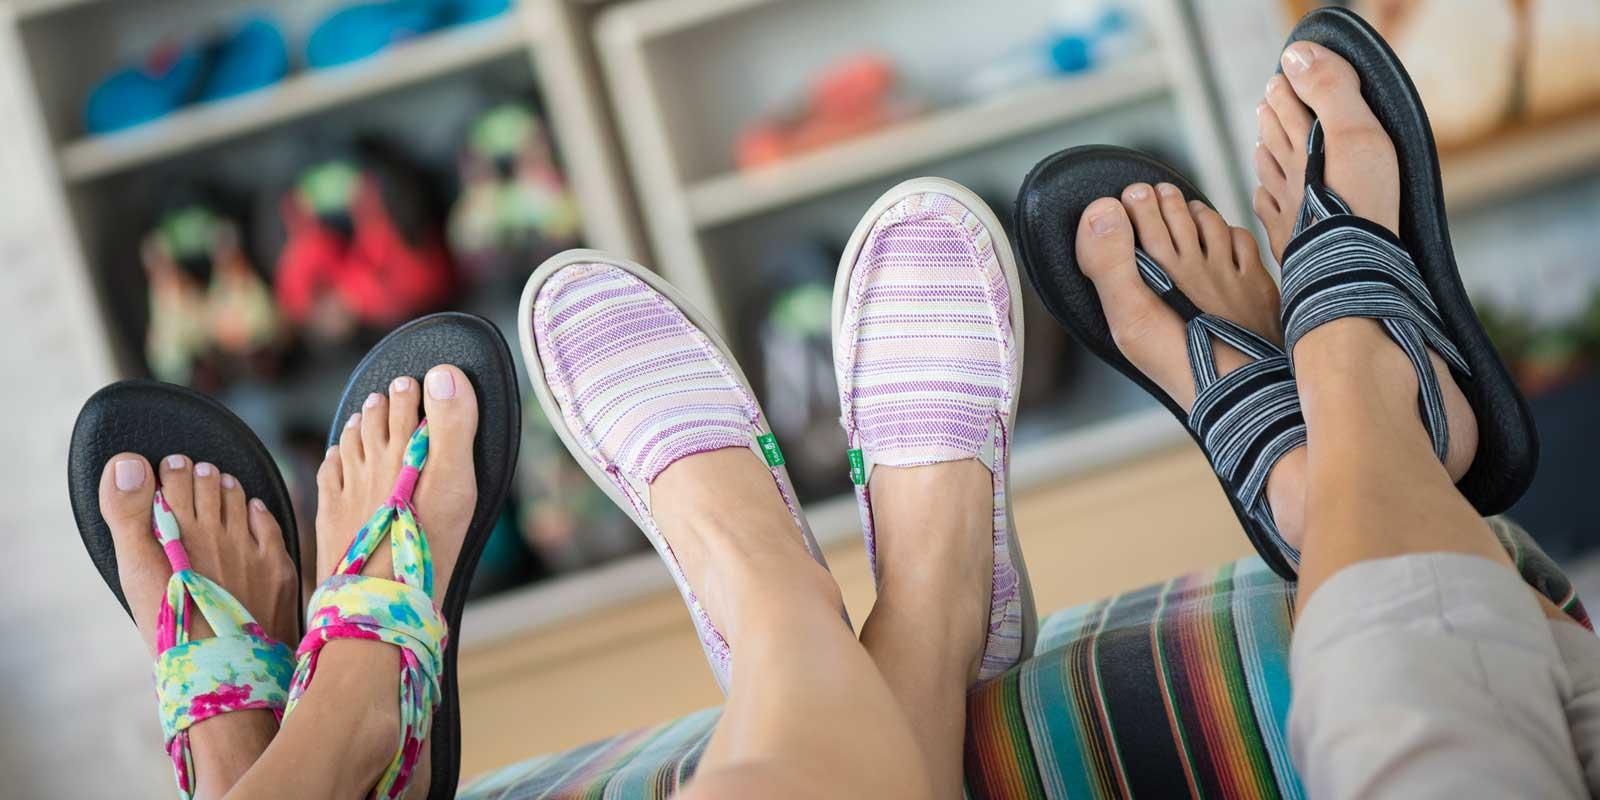 Go shoe shopping at Sanuk in Disney Springs. Just one of many activities adults can enjoy at Disney World.